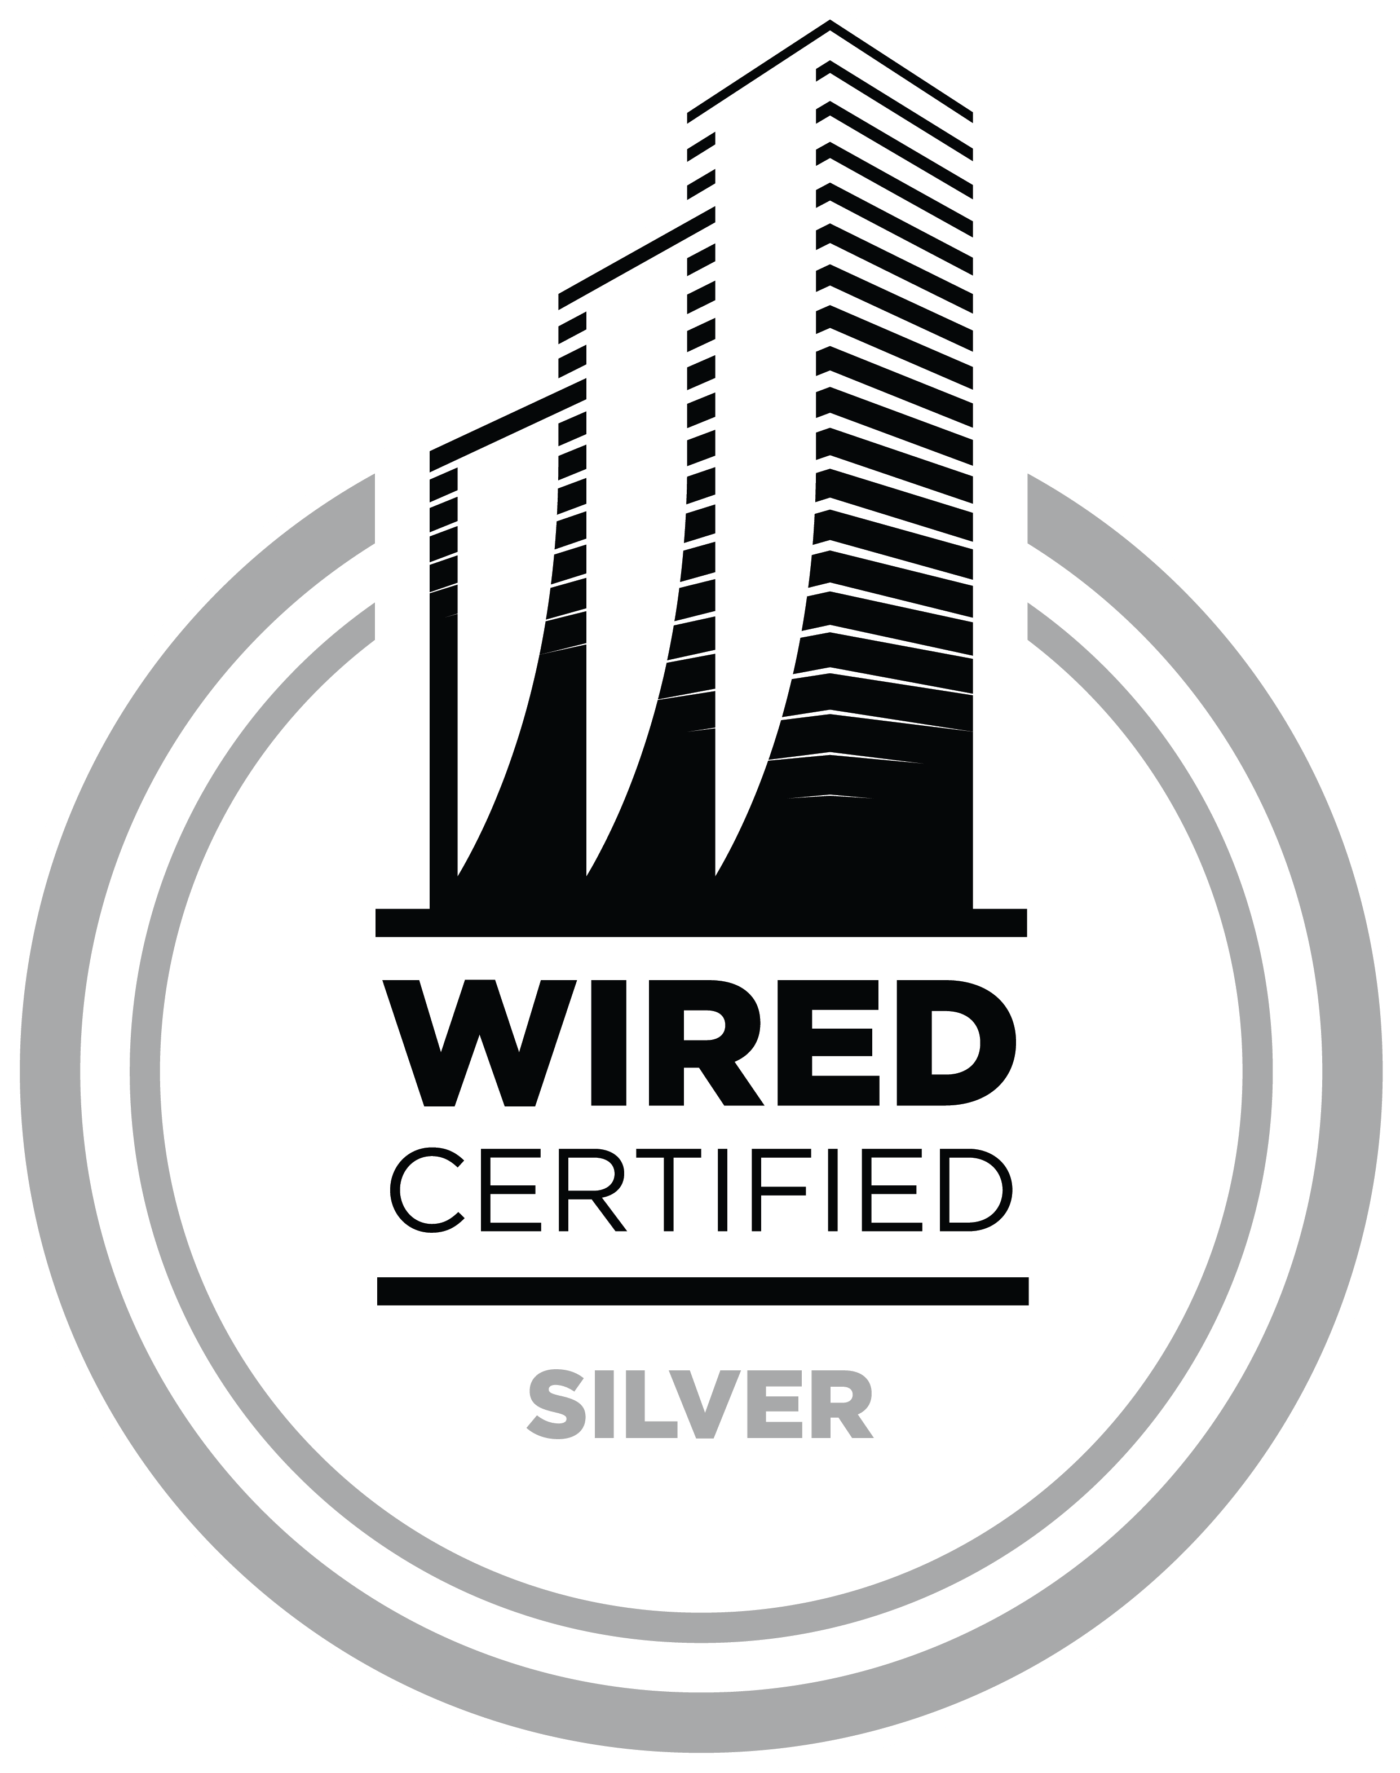 Wired Certified Silver Image